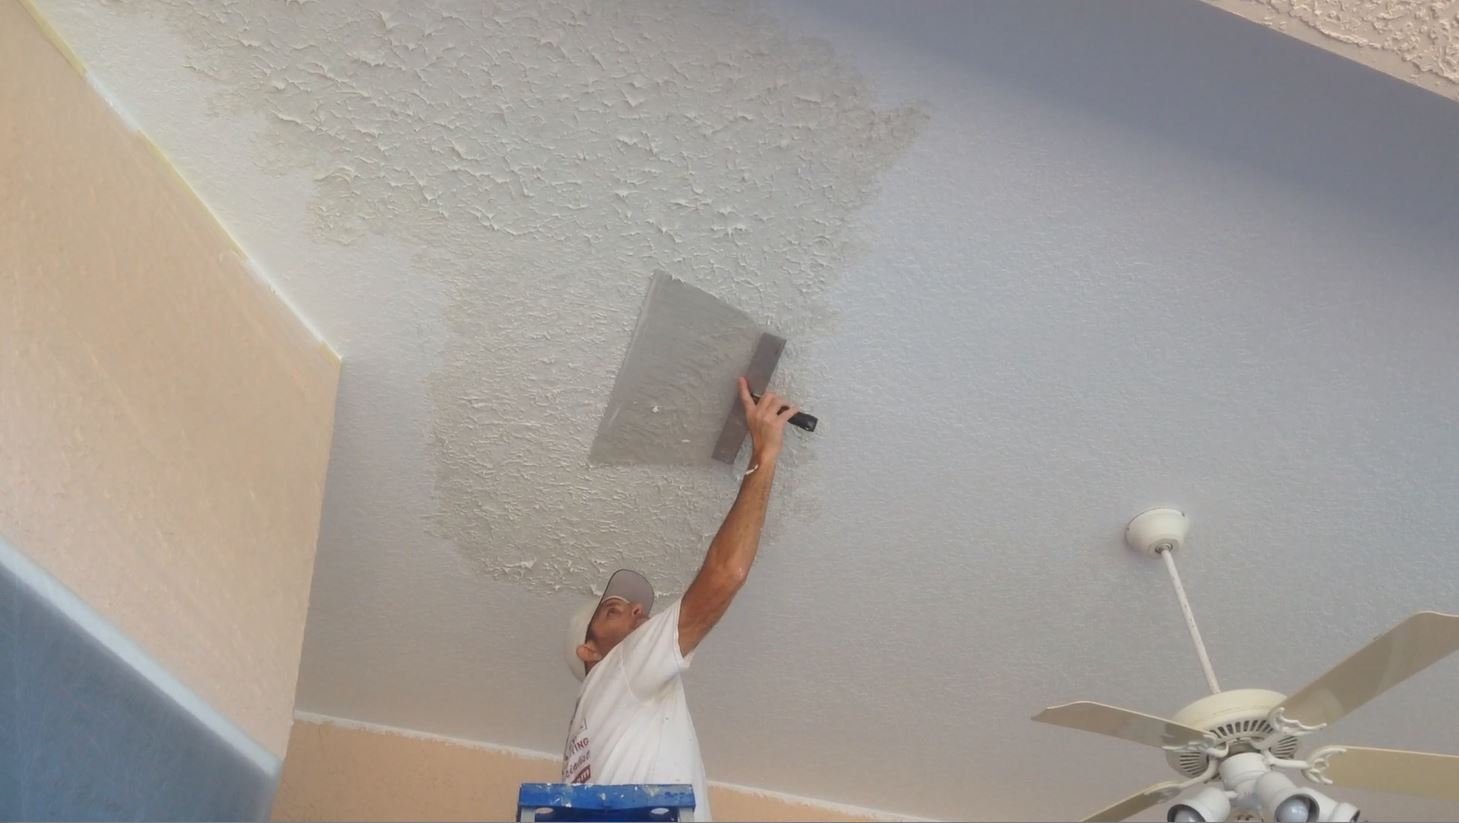 Rockledge Knockdown Texture Ceiling Repair